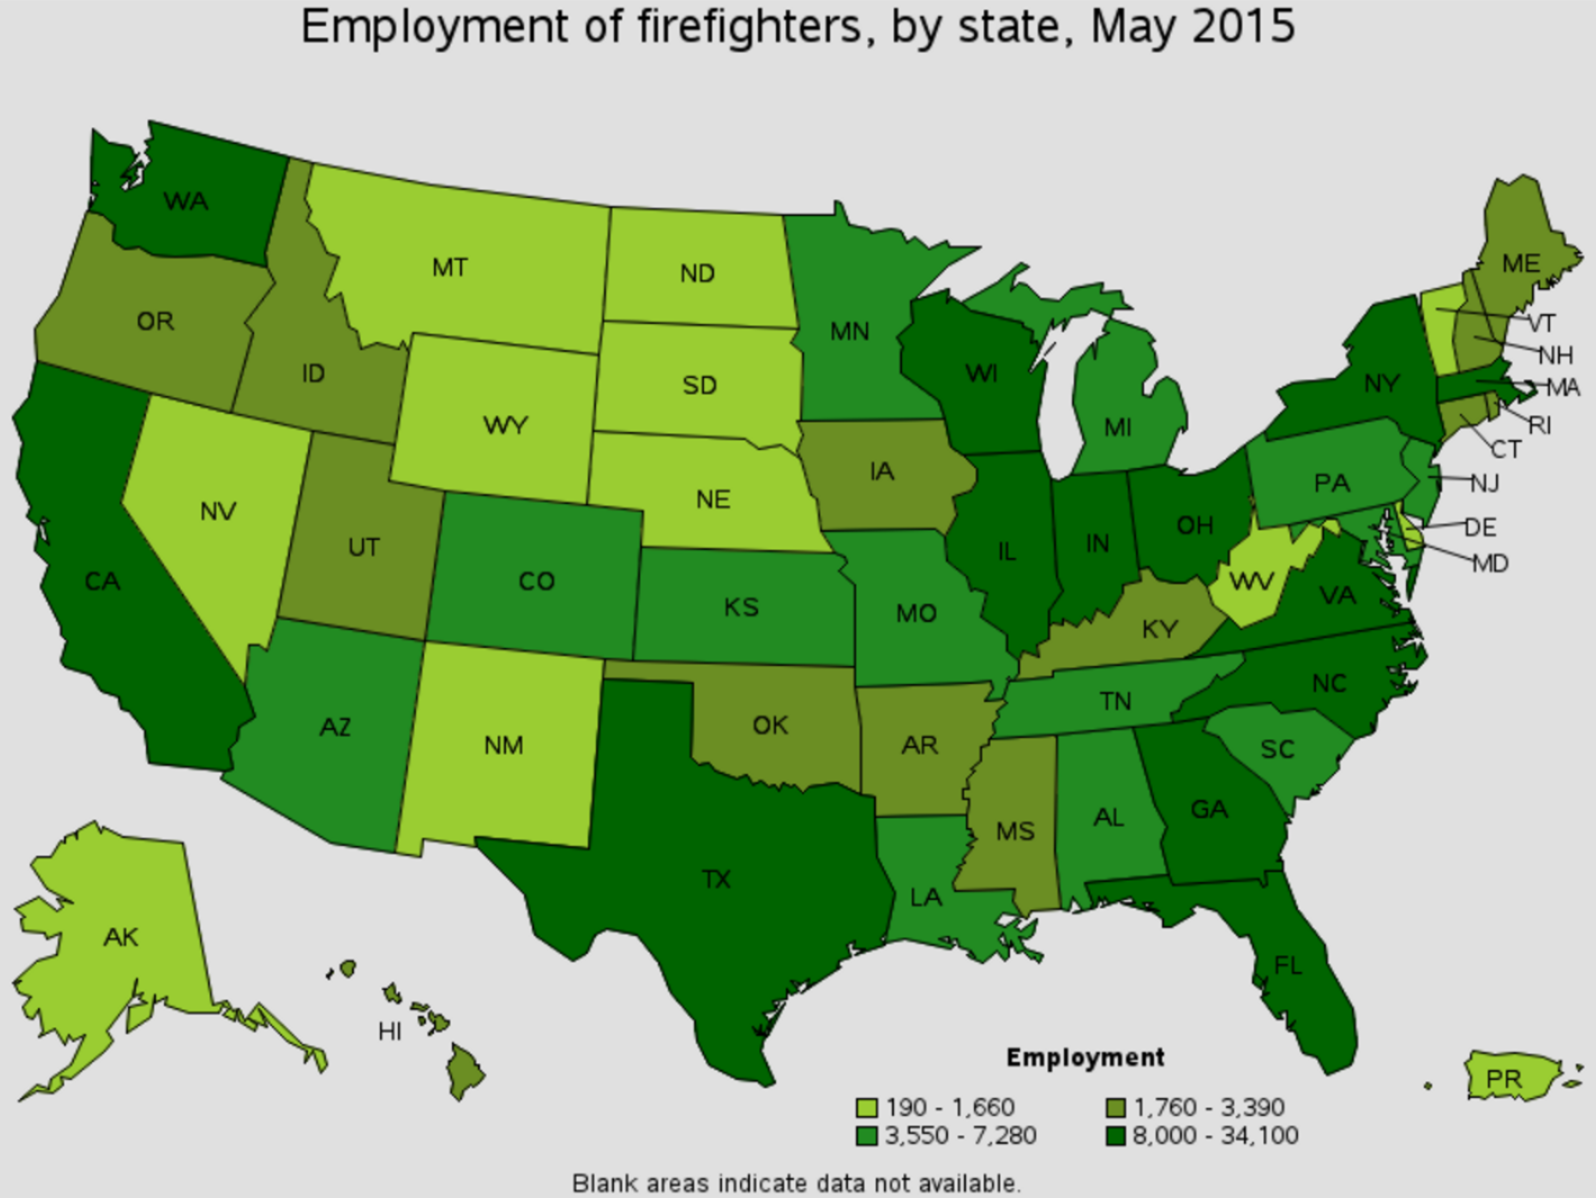 firefighter job outlook by state Savannah Georgia